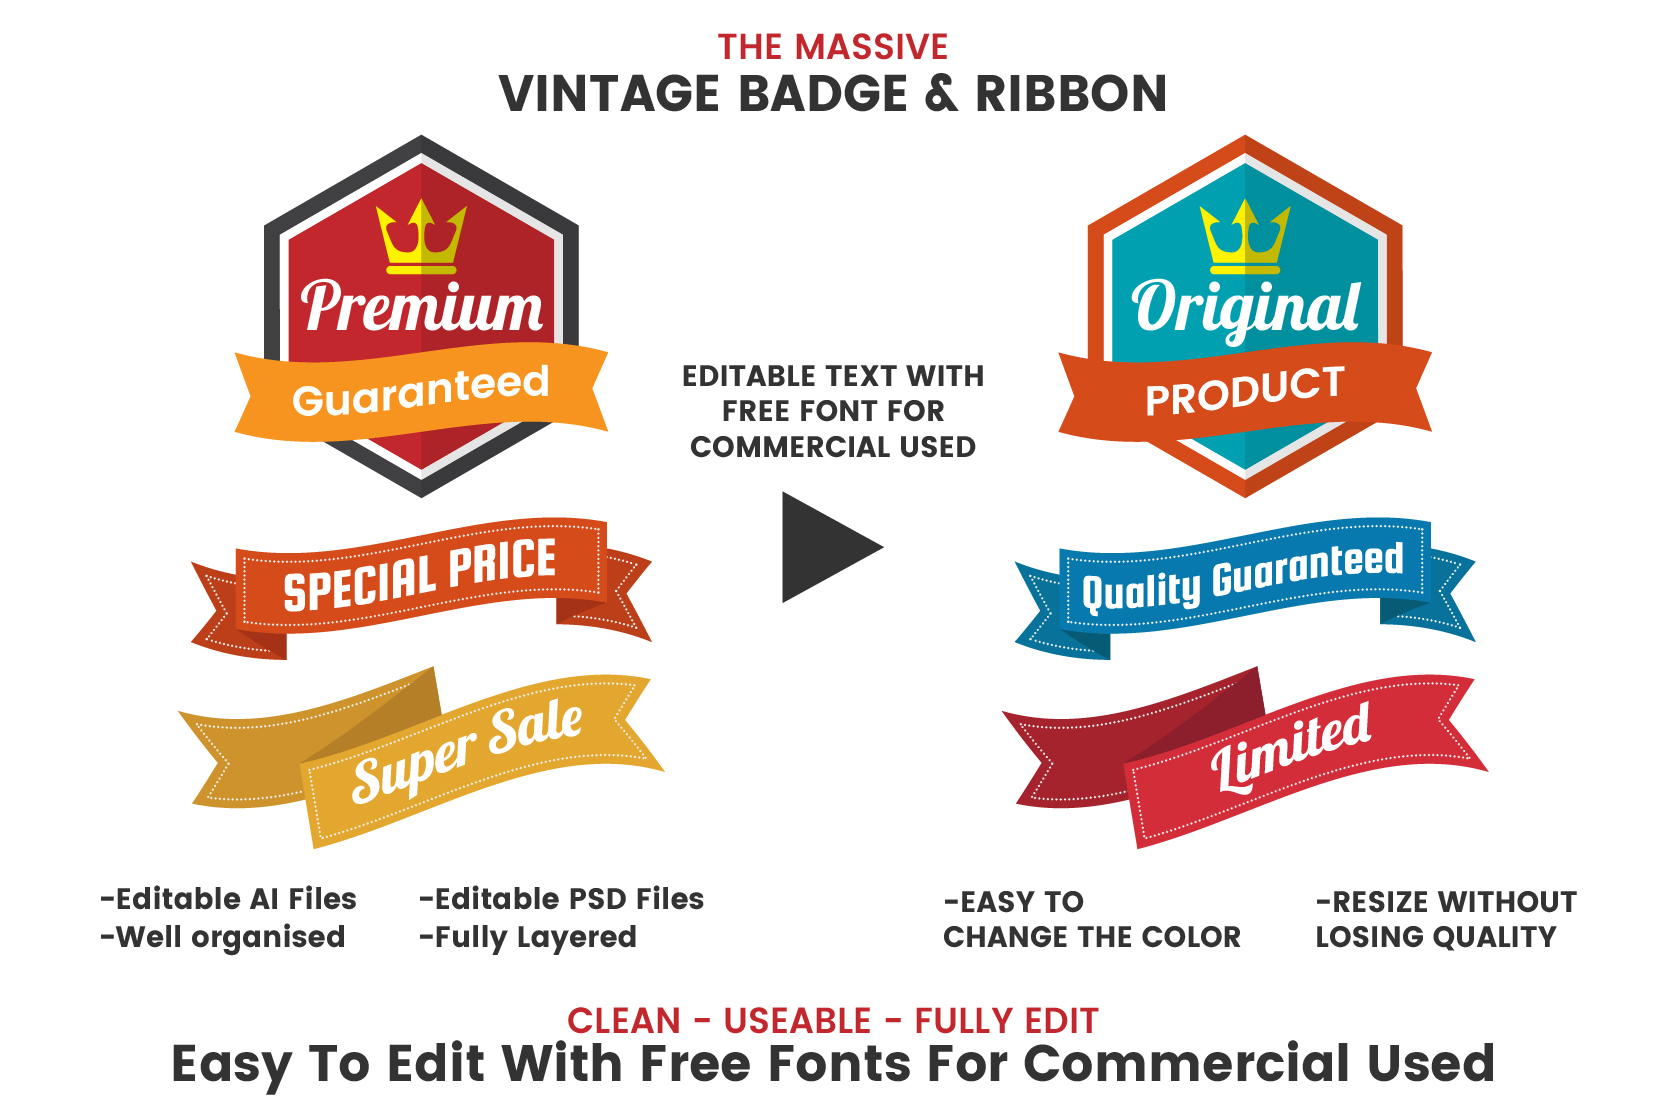 1046 VINTAGE BADGE & RIBBON example image 2